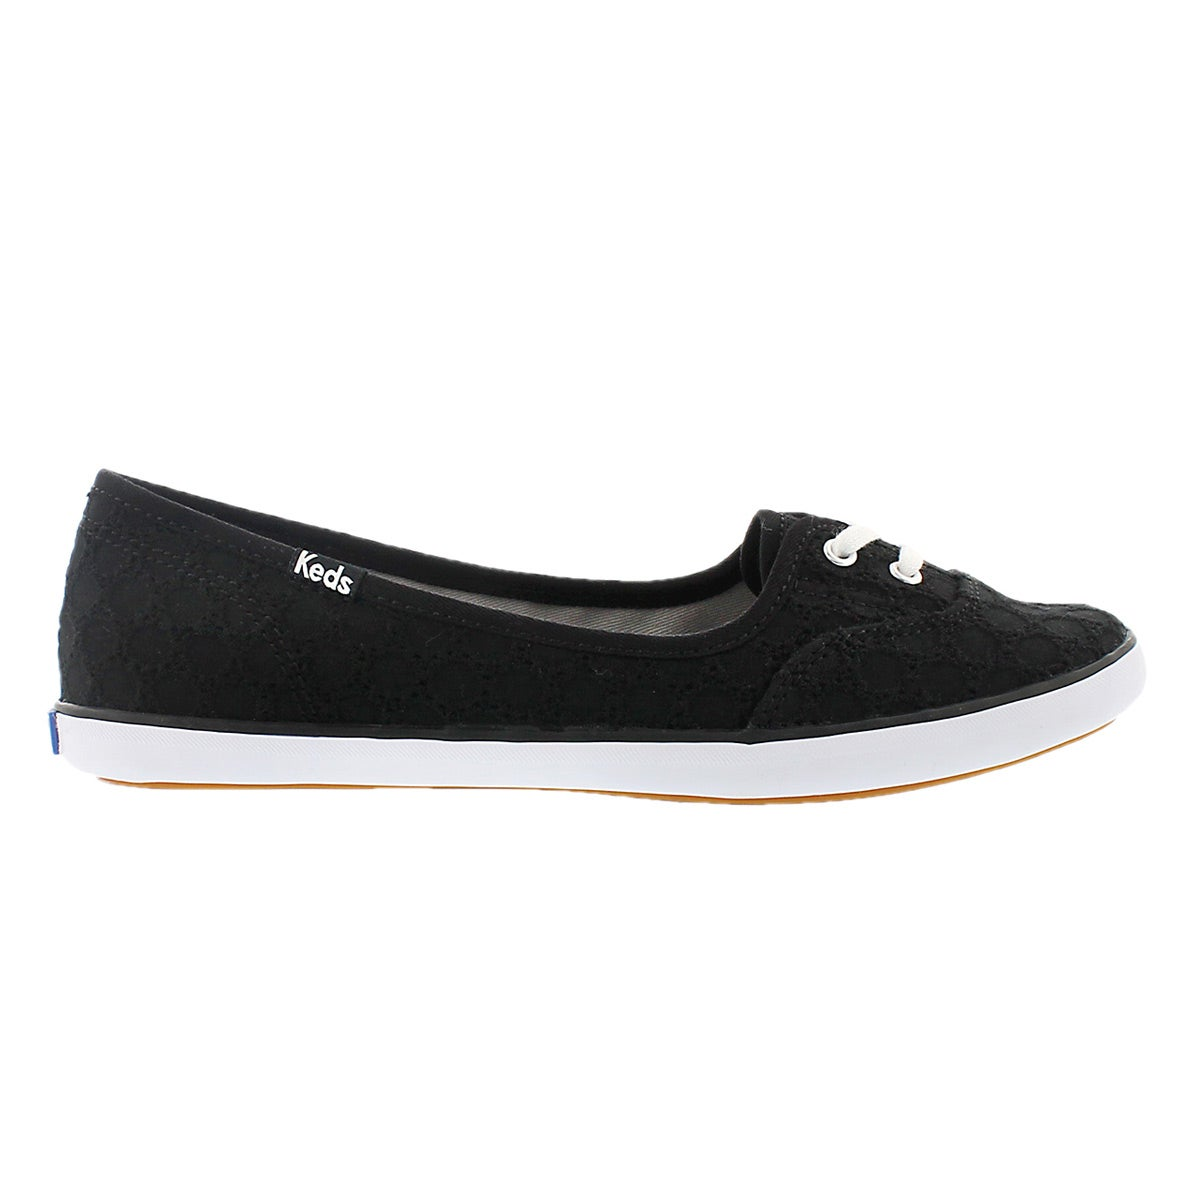 Lds Teacup Eyelet black slip on